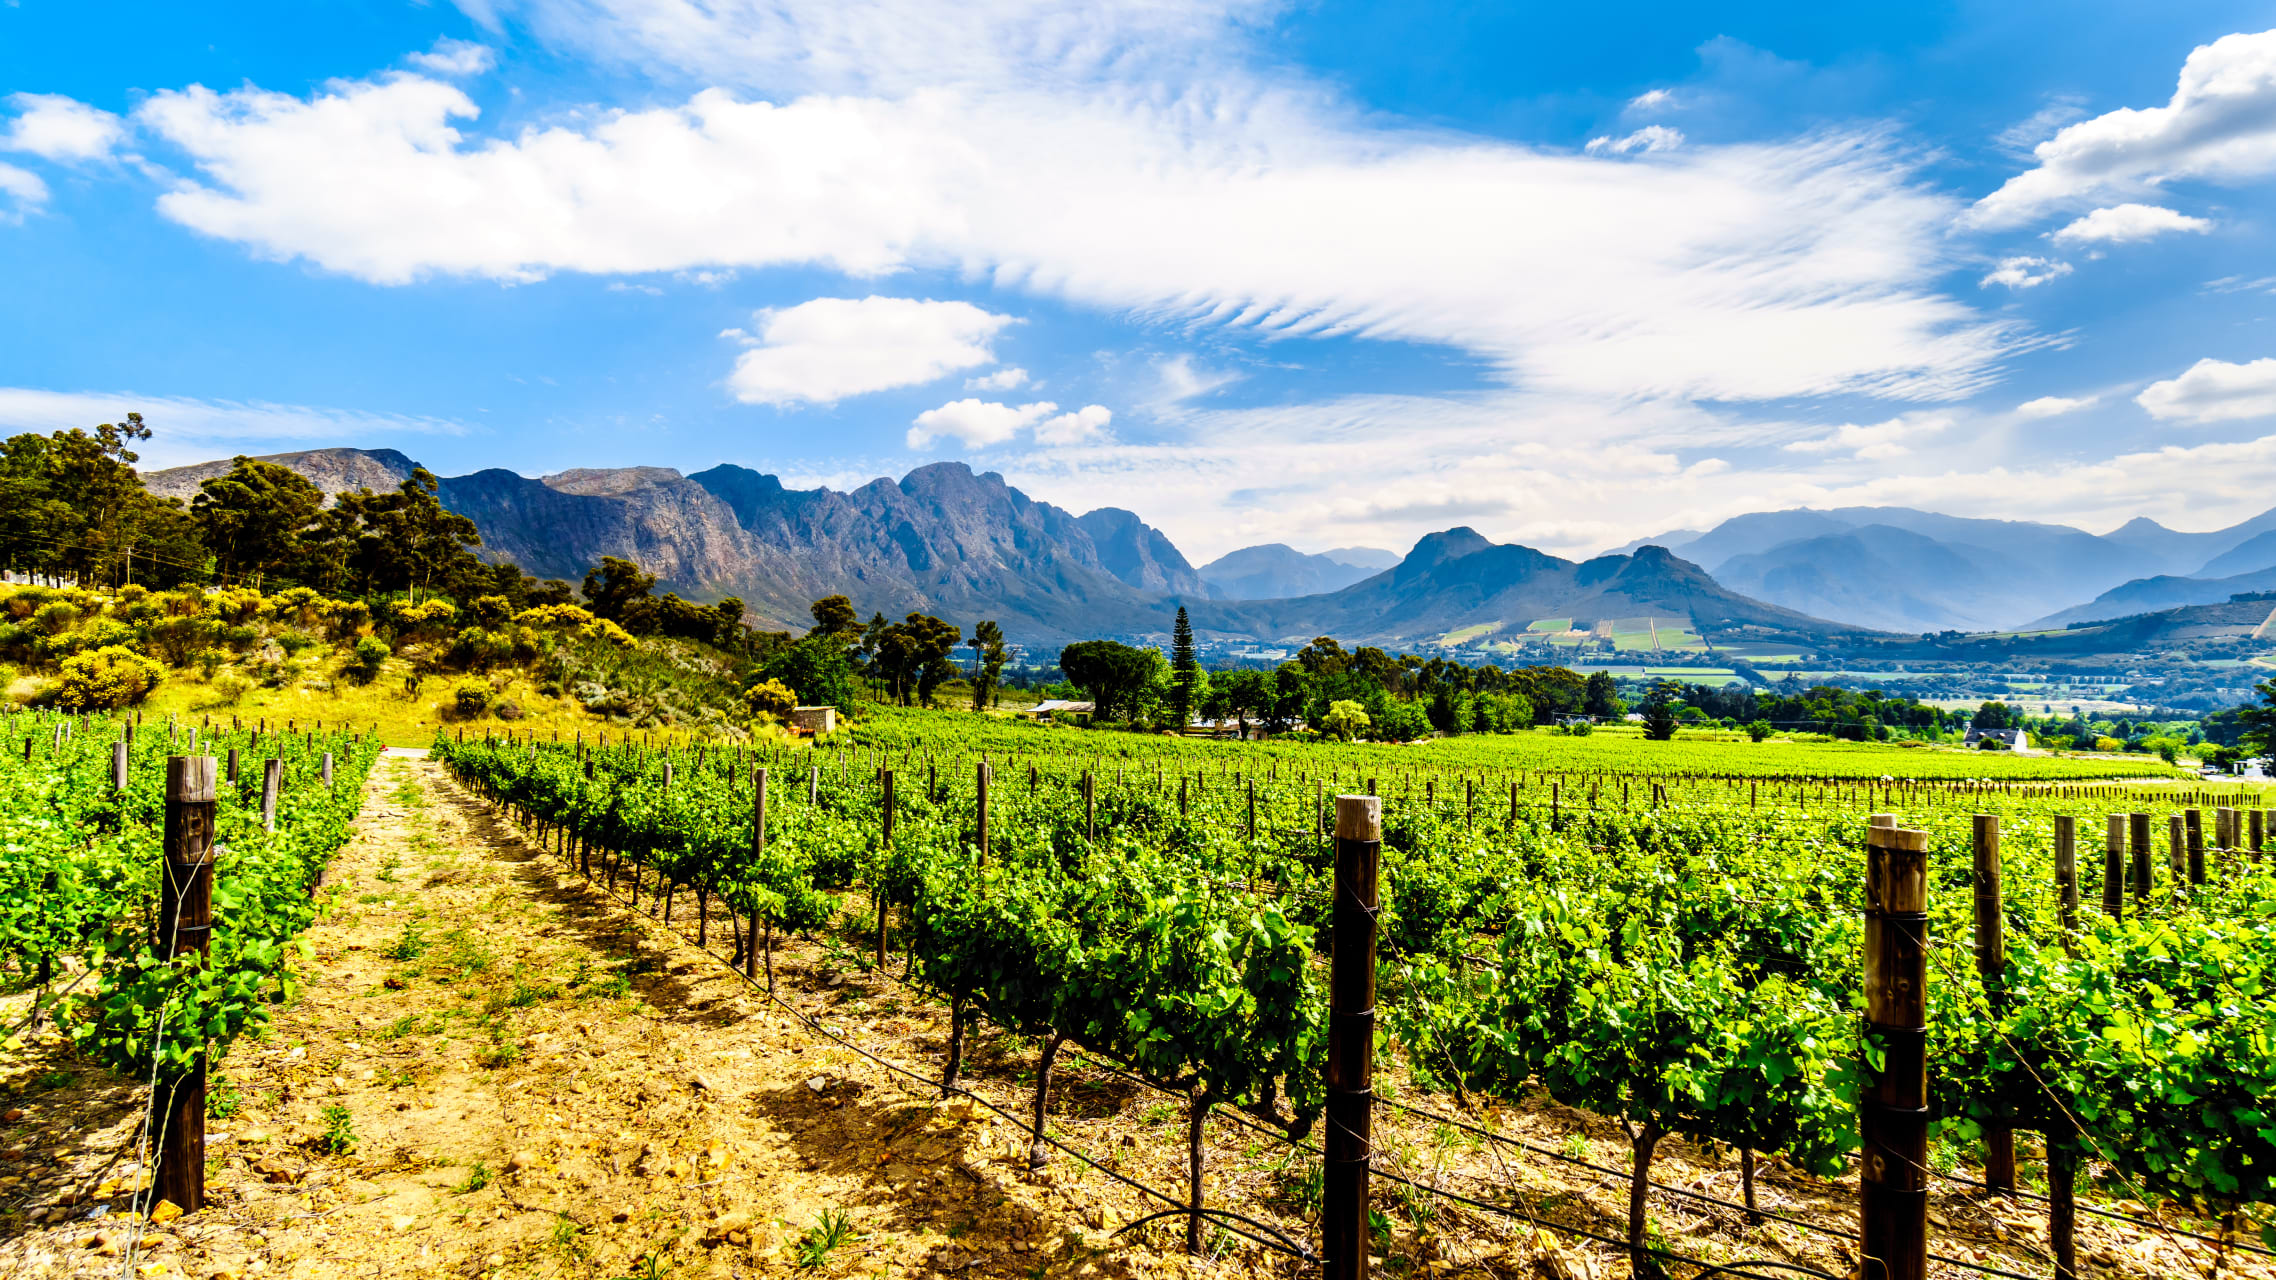 Cape Town - Franschhoek: a Little Piece of France in South Africa